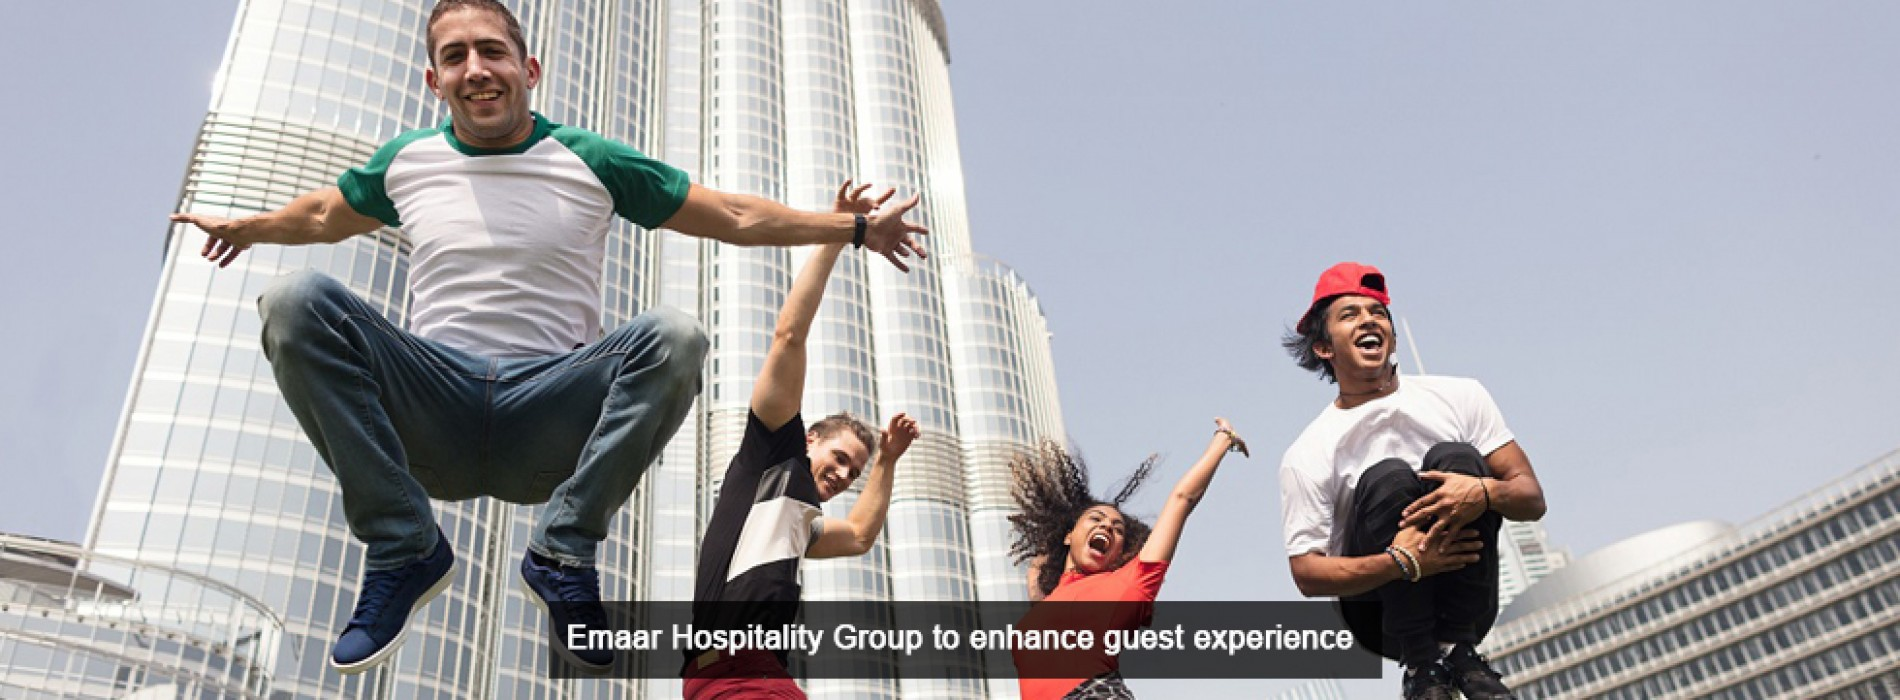 Emaar Hospitality Group launches innovative service culture programme to enhance guest experience